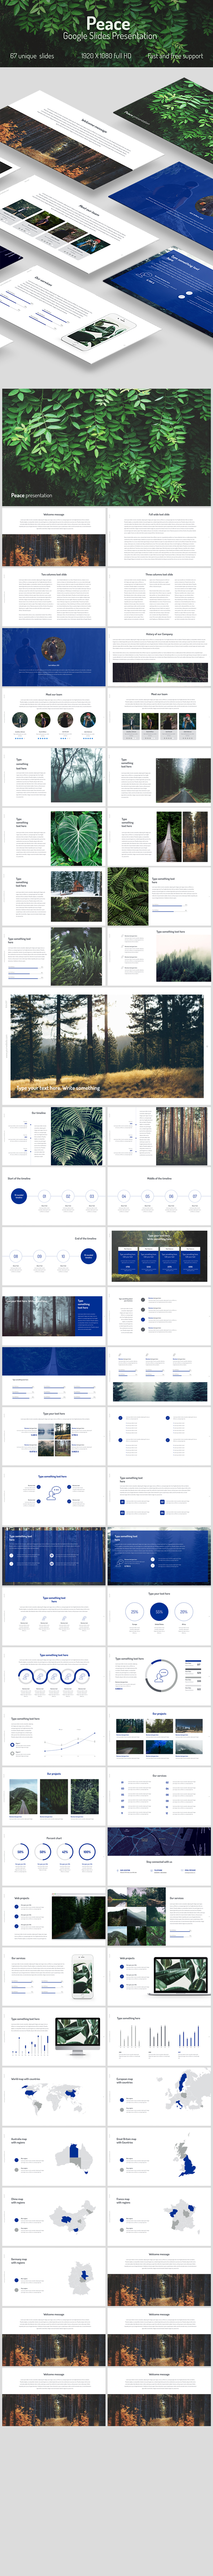 Peace Google Slides - Google Slides Presentation Templates